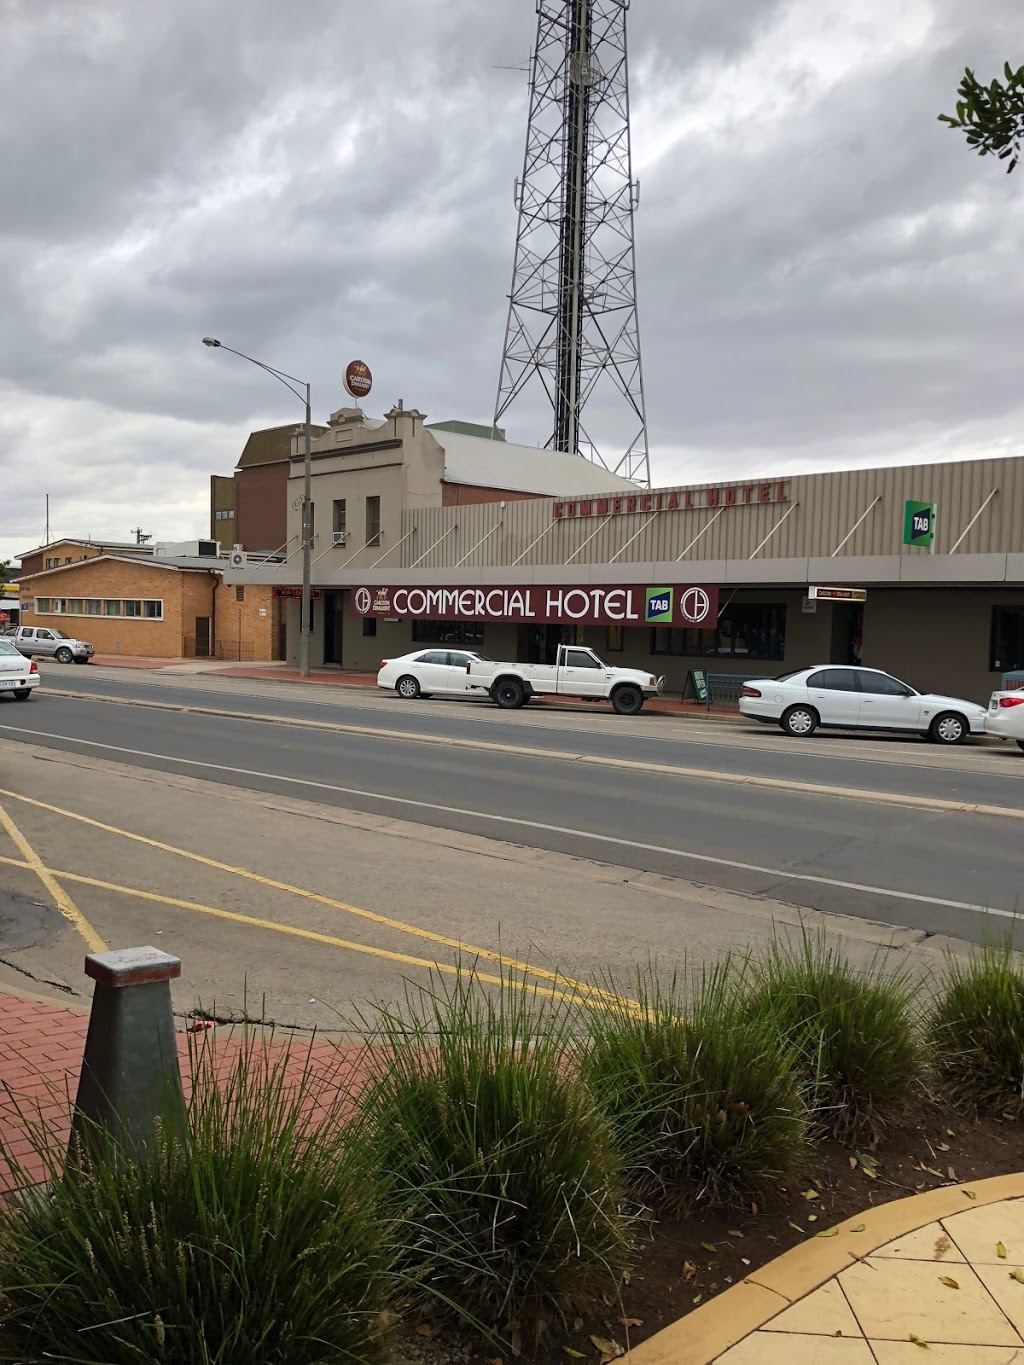 Commercial Hotel | restaurant | 91 Campbell St, Swan Hill VIC 3585, Australia | 0350321214 OR +61 3 5032 1214